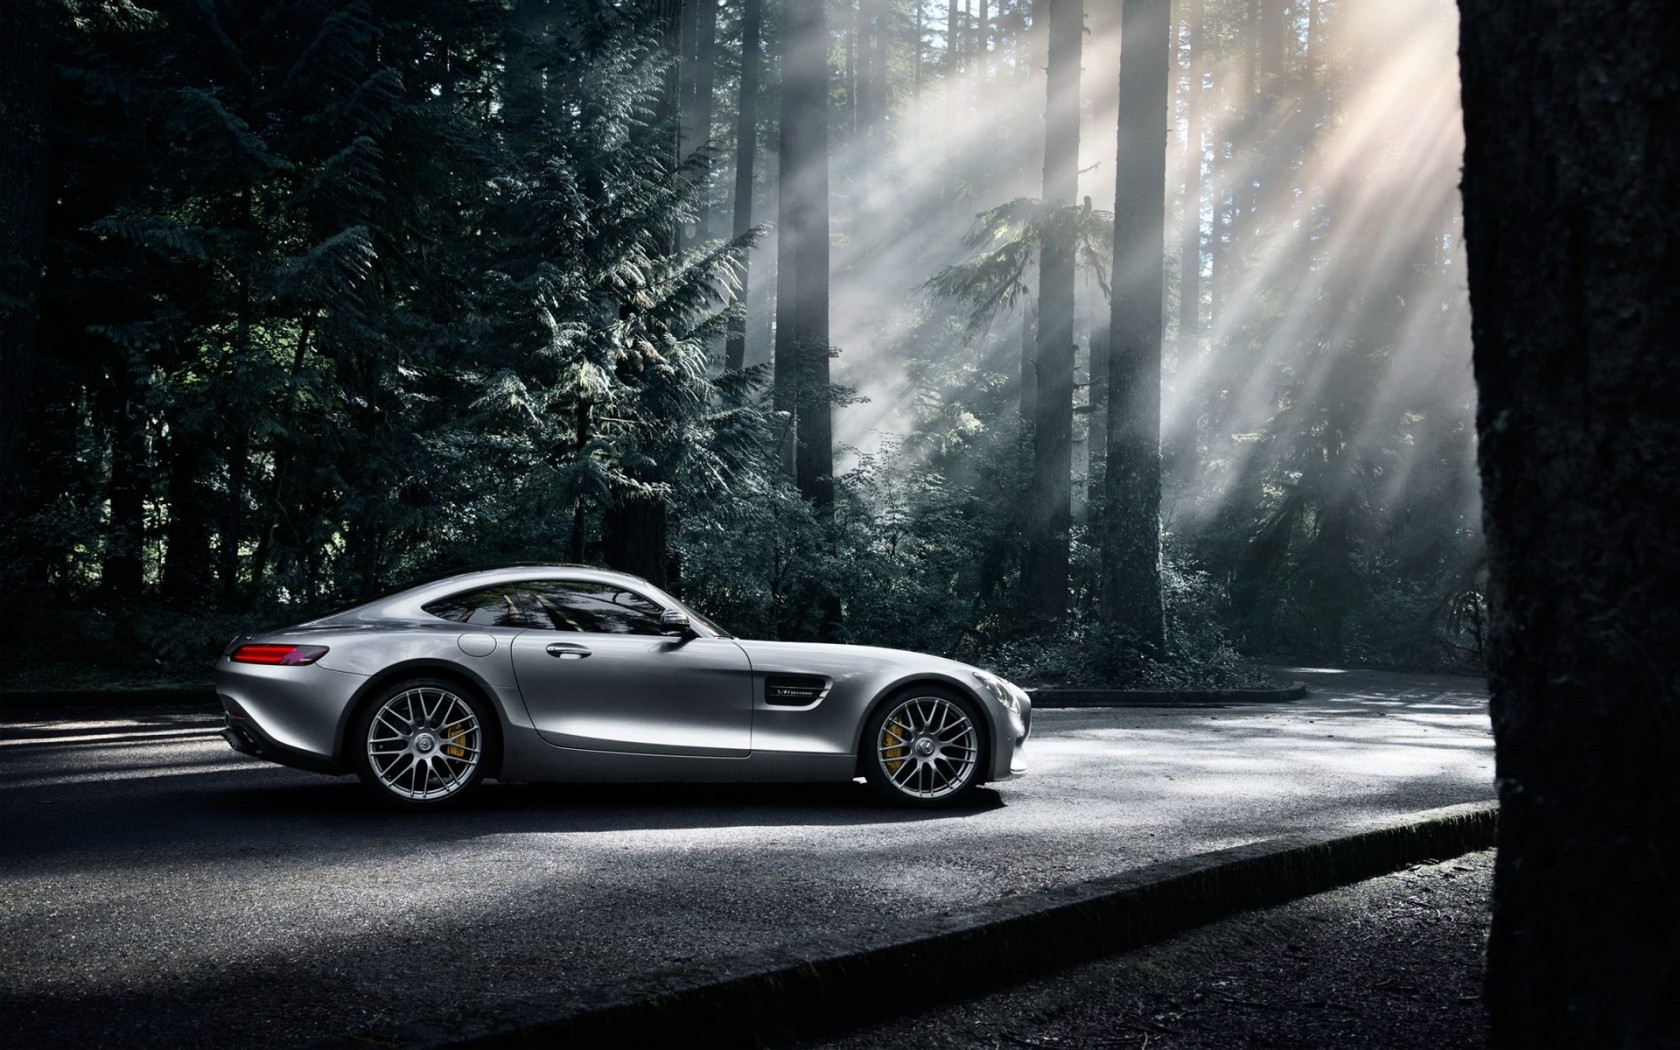 2016 mercedes benz amg gt s 3 wallpaper hd car wallpapers id 5638. Black Bedroom Furniture Sets. Home Design Ideas